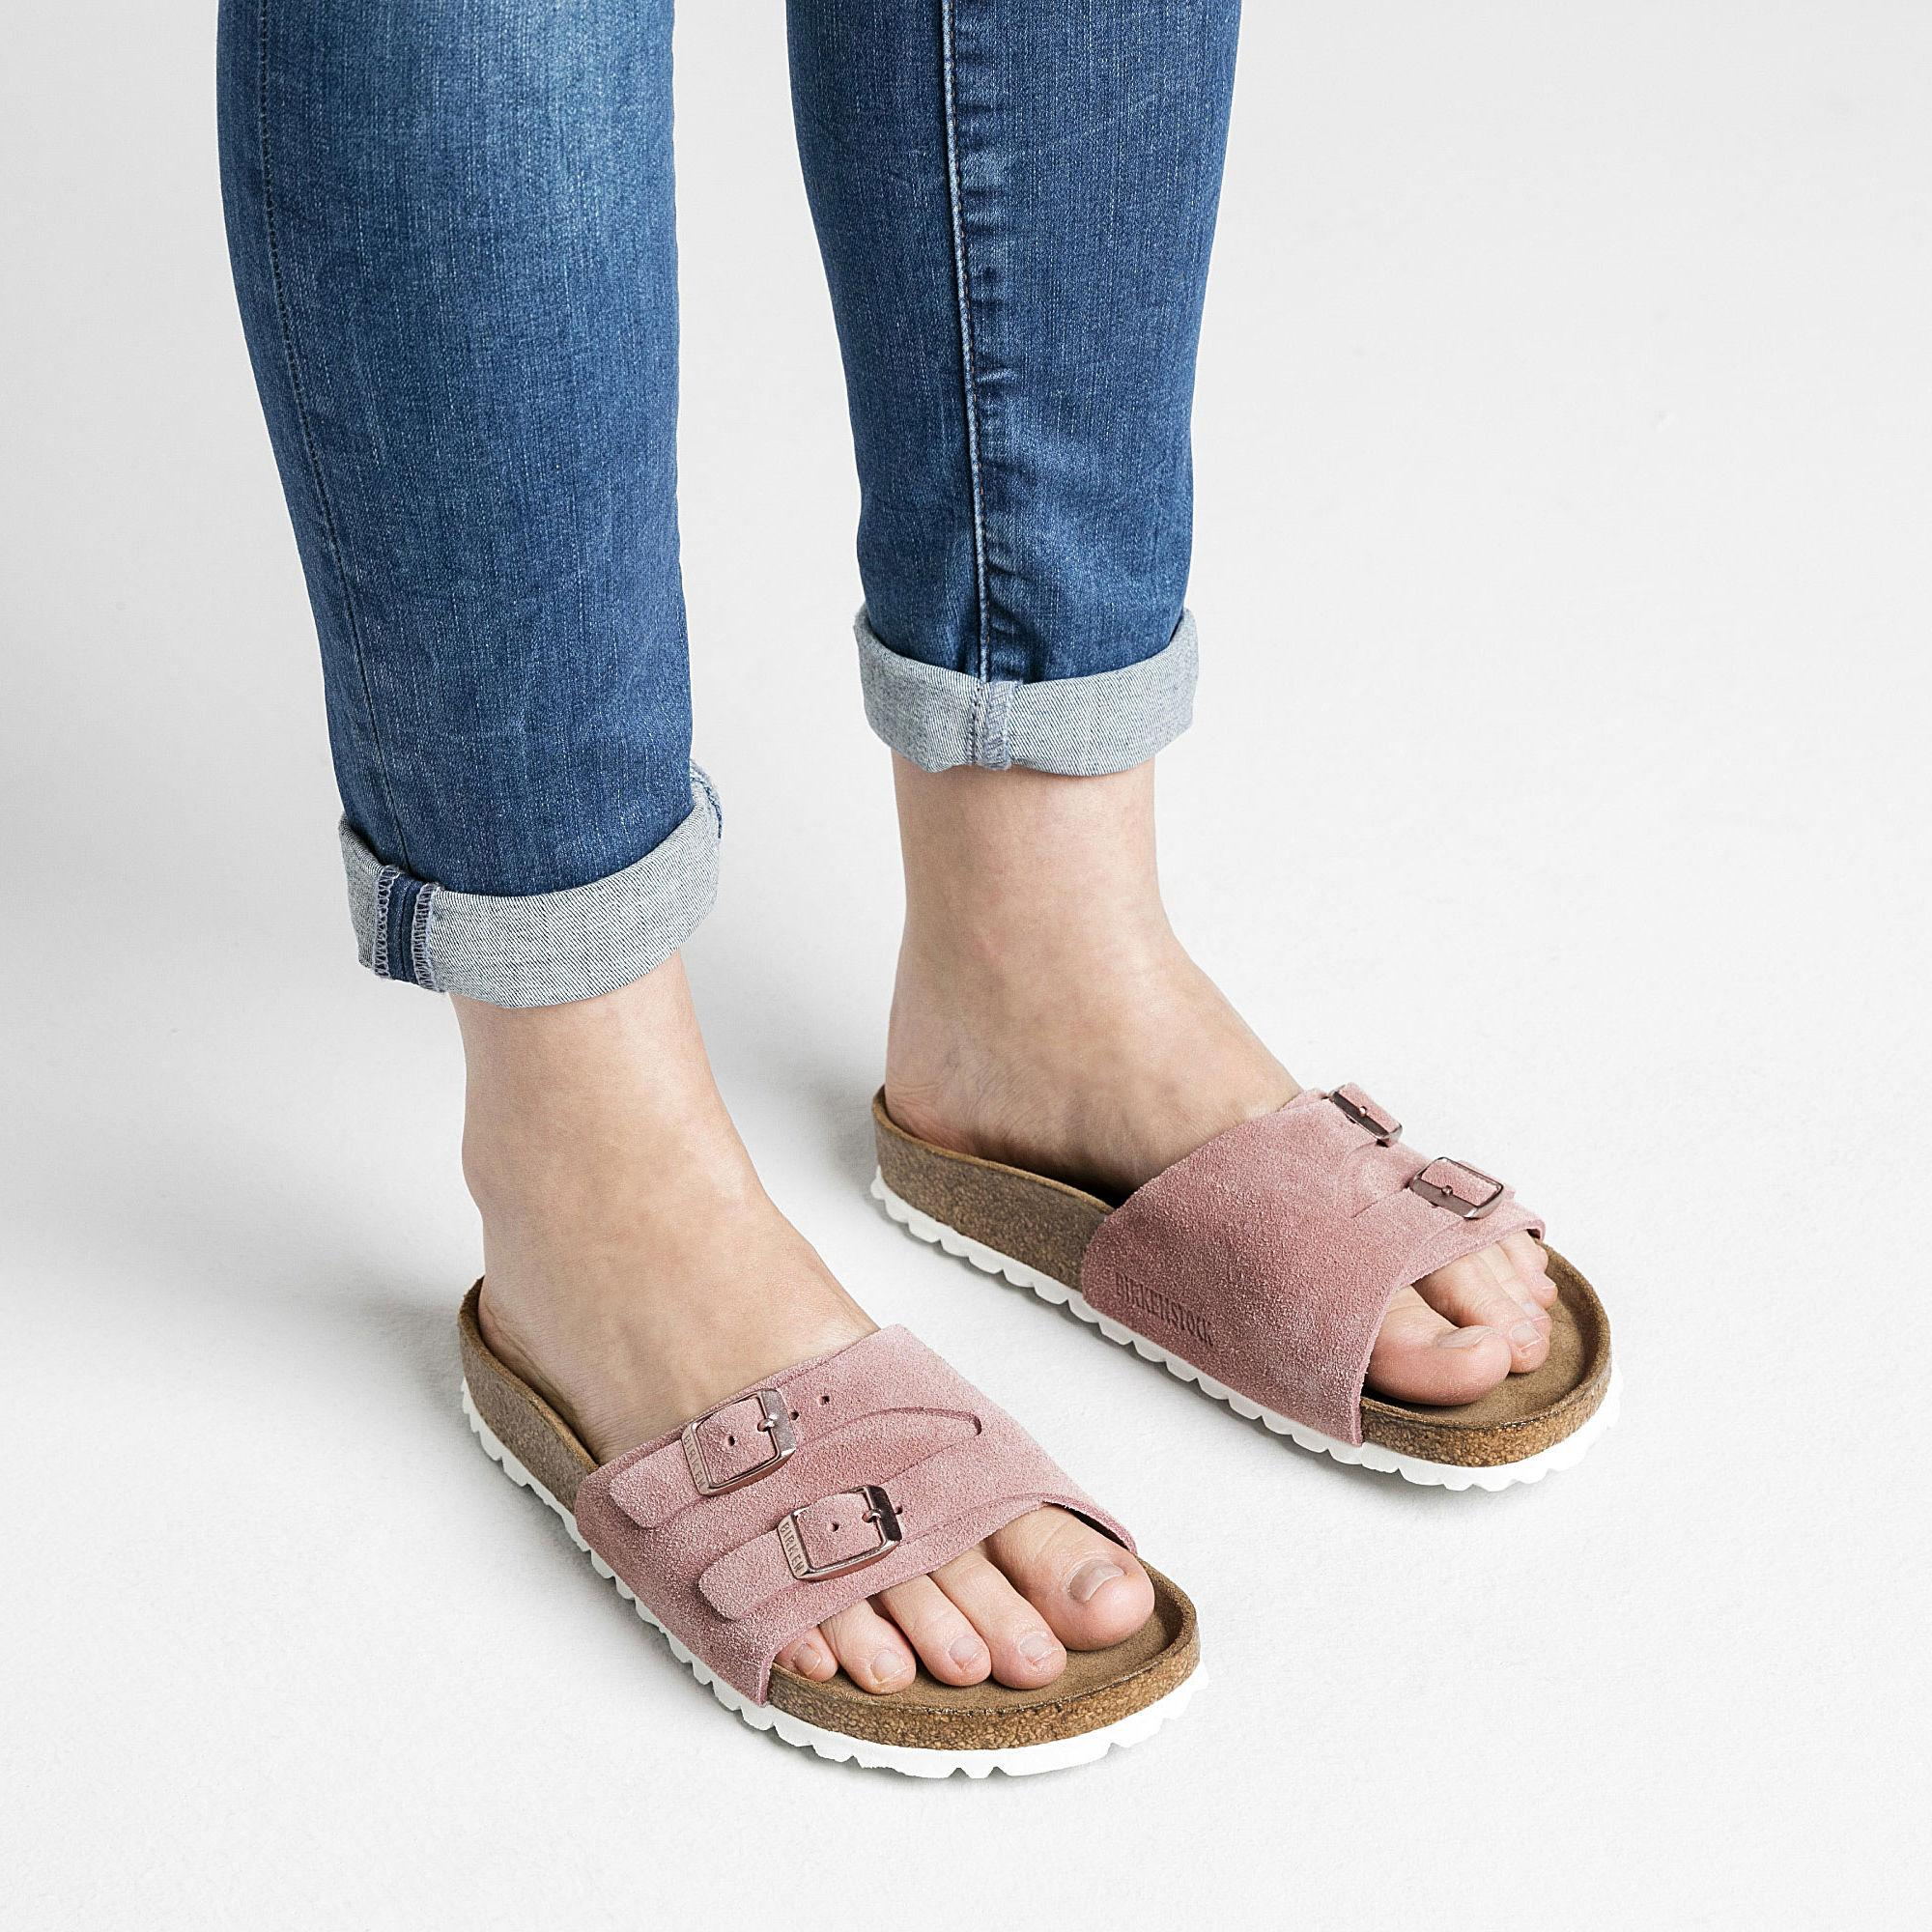 afb5c4f691f3 Specifications of Birkenstocks Women Styles Vaduz Vaduz Suede Soft Footbed  Rose